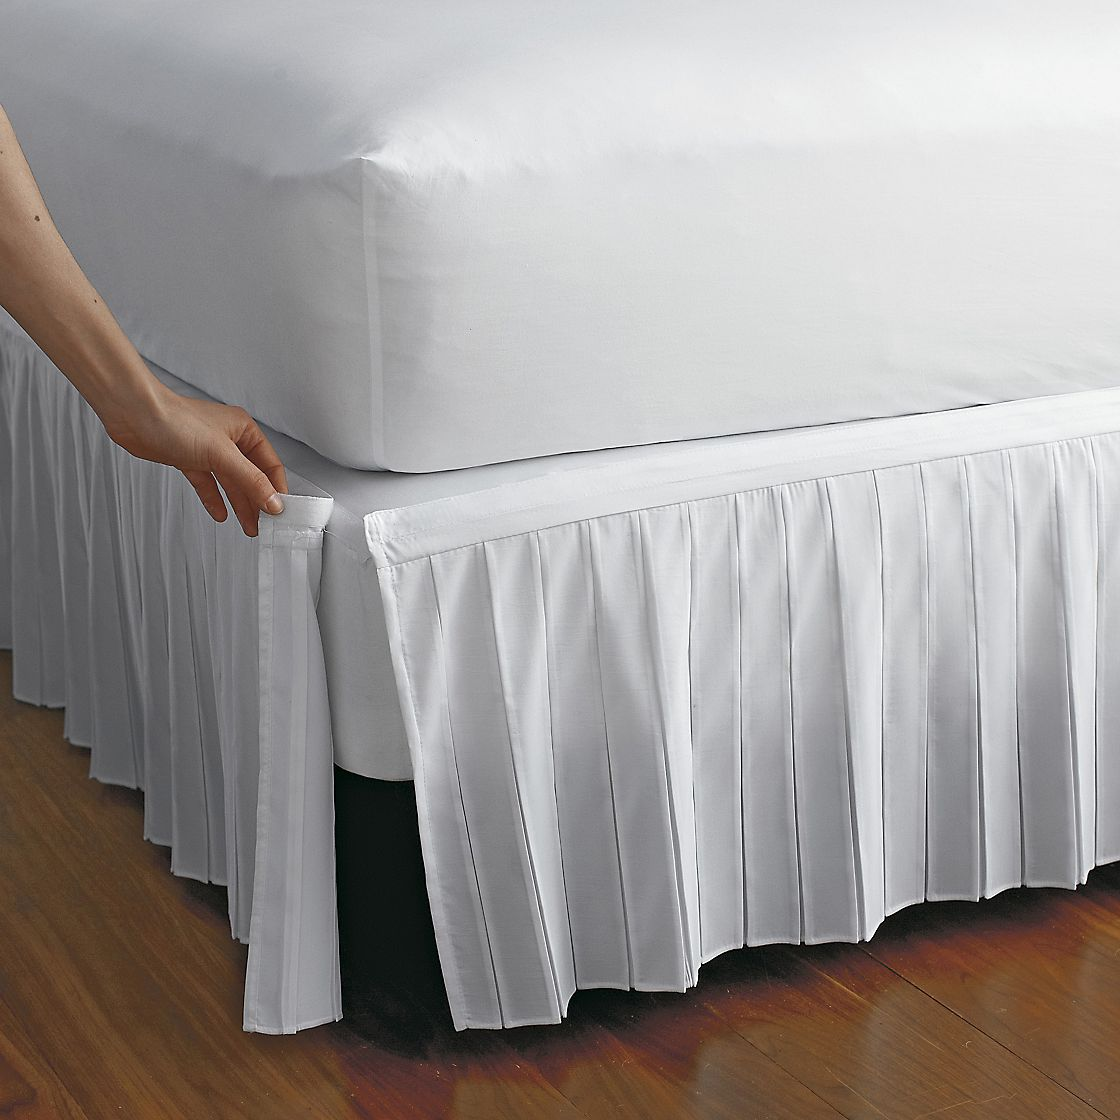 Bed Skirt Solid Polyester Bed Dust Ruffle 3 Sided Coverage Queen/King/Tiwn/Full Give a stylish appearance to a bed and prevent dust accumulating under it with bed skirt. Our bed skirt is made of % polyester making it easy to clean, machine washable.